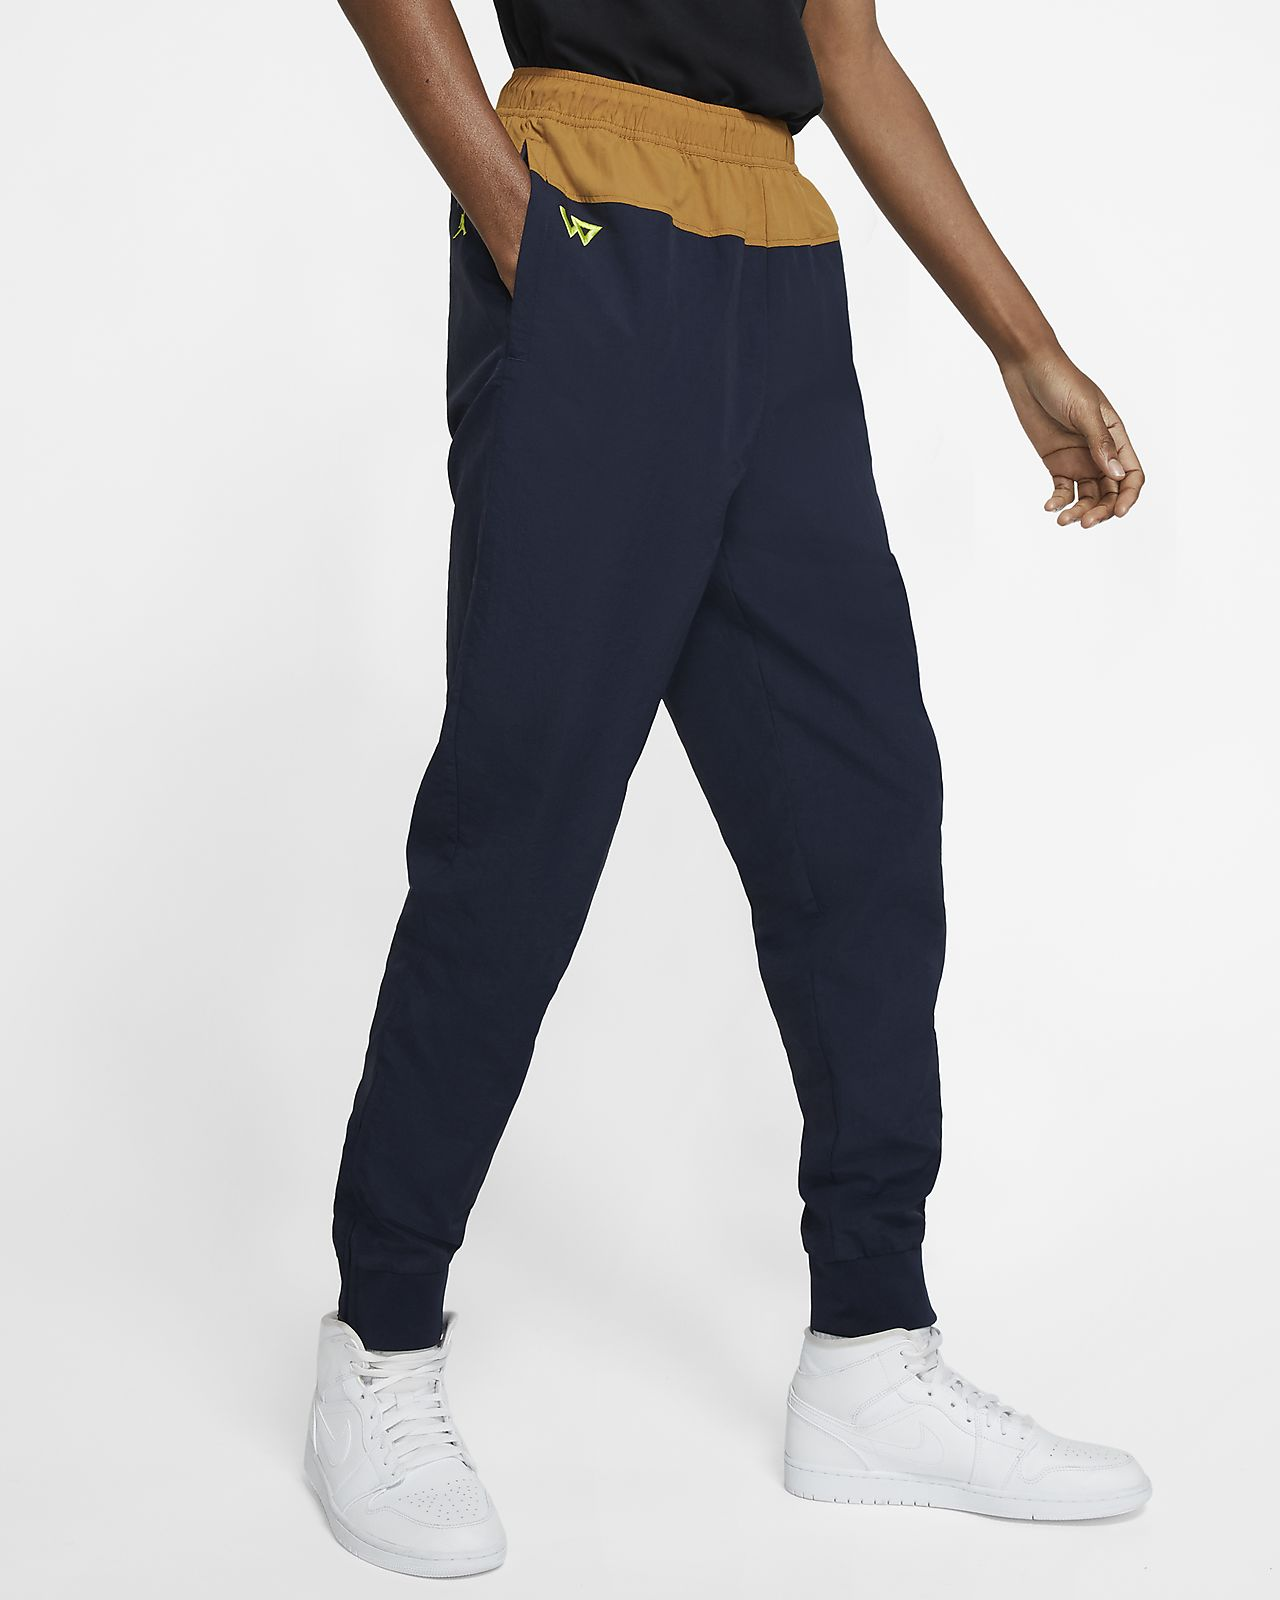 Russell Westbrook x Opening Ceremony Men's Track Pants